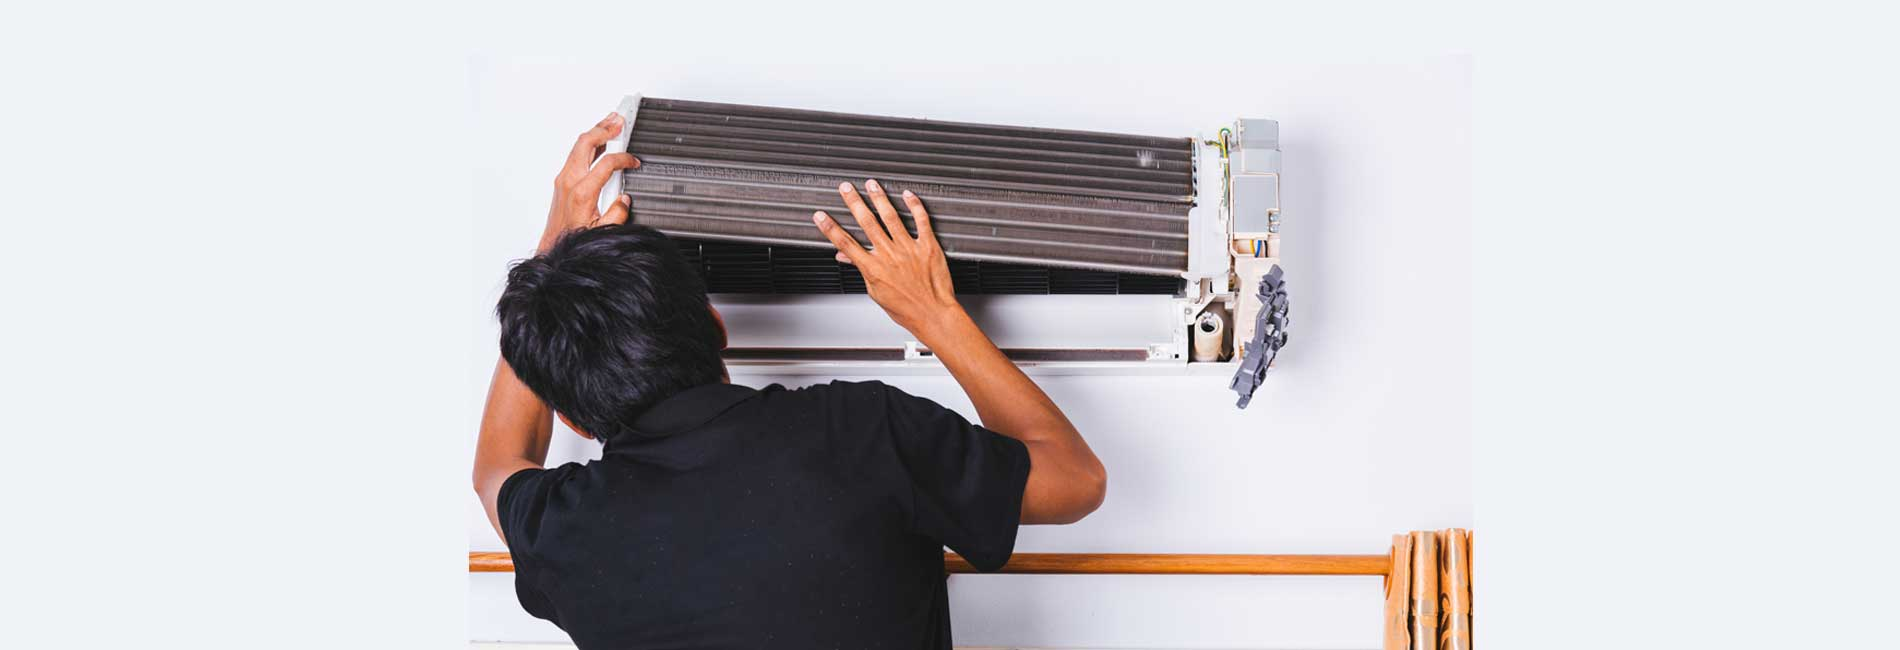 Bluestar Air Condition Service in Pozhichalur